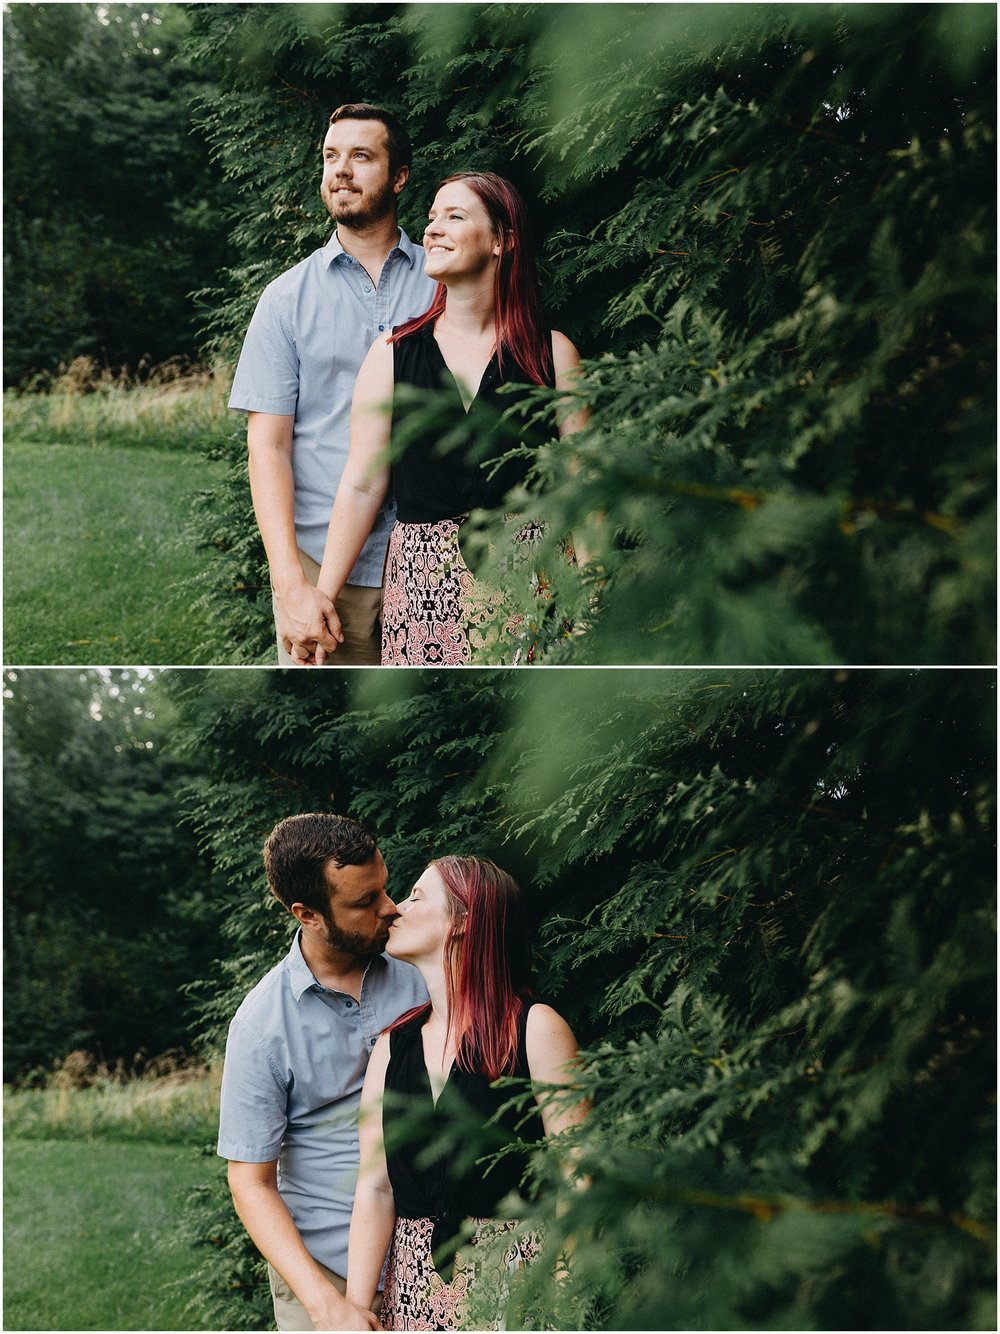 lifestyle-anniversary-engagement-photo session-rv-camping-road trip-vintage trailer-camping-outdoor photos_0267.jpg